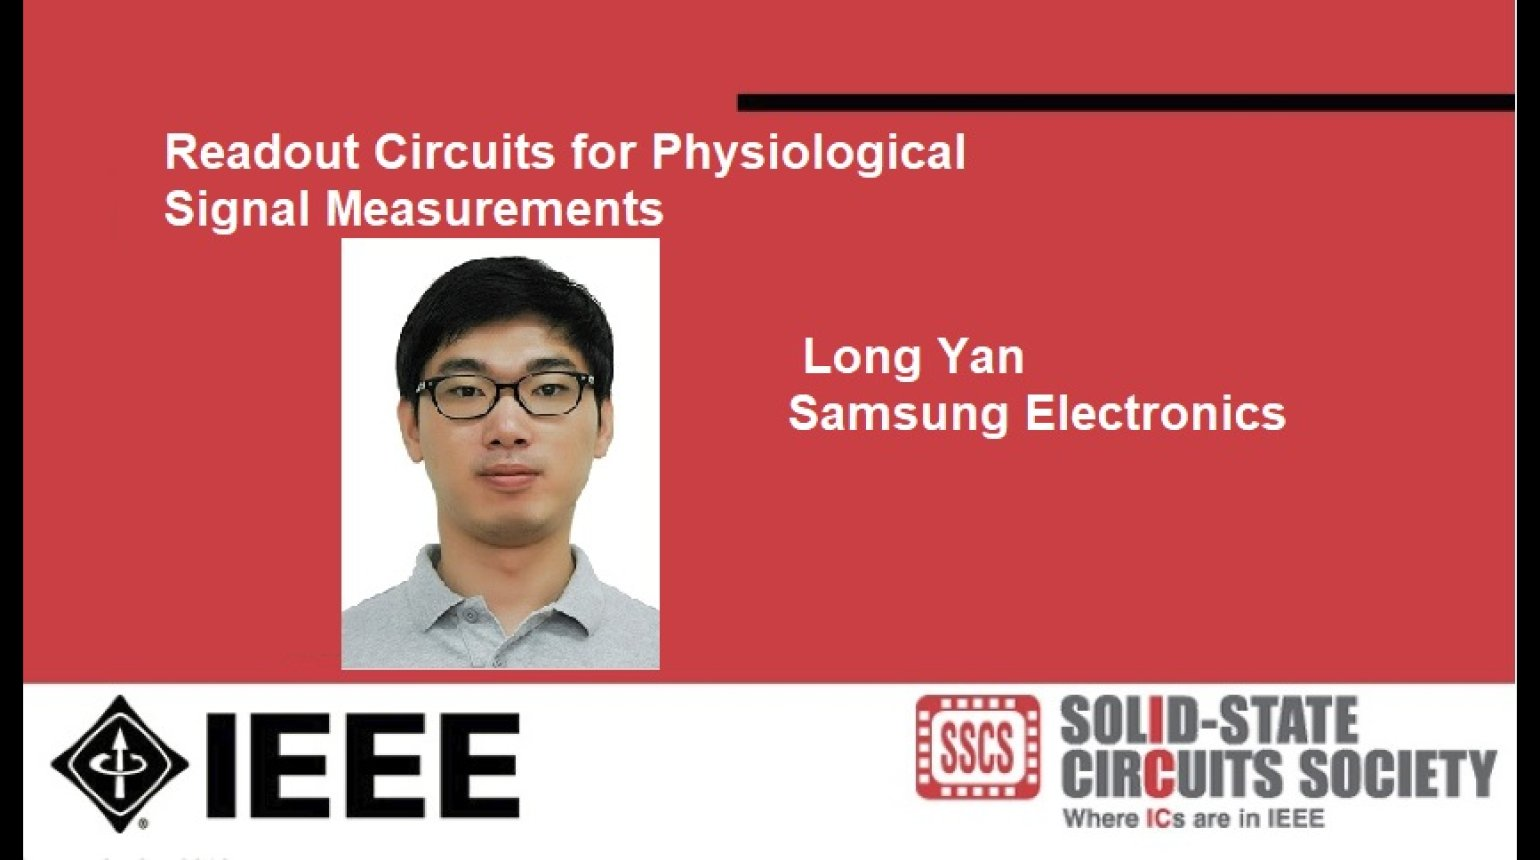 Readout Circuits for Physiological Signal Measurements Video